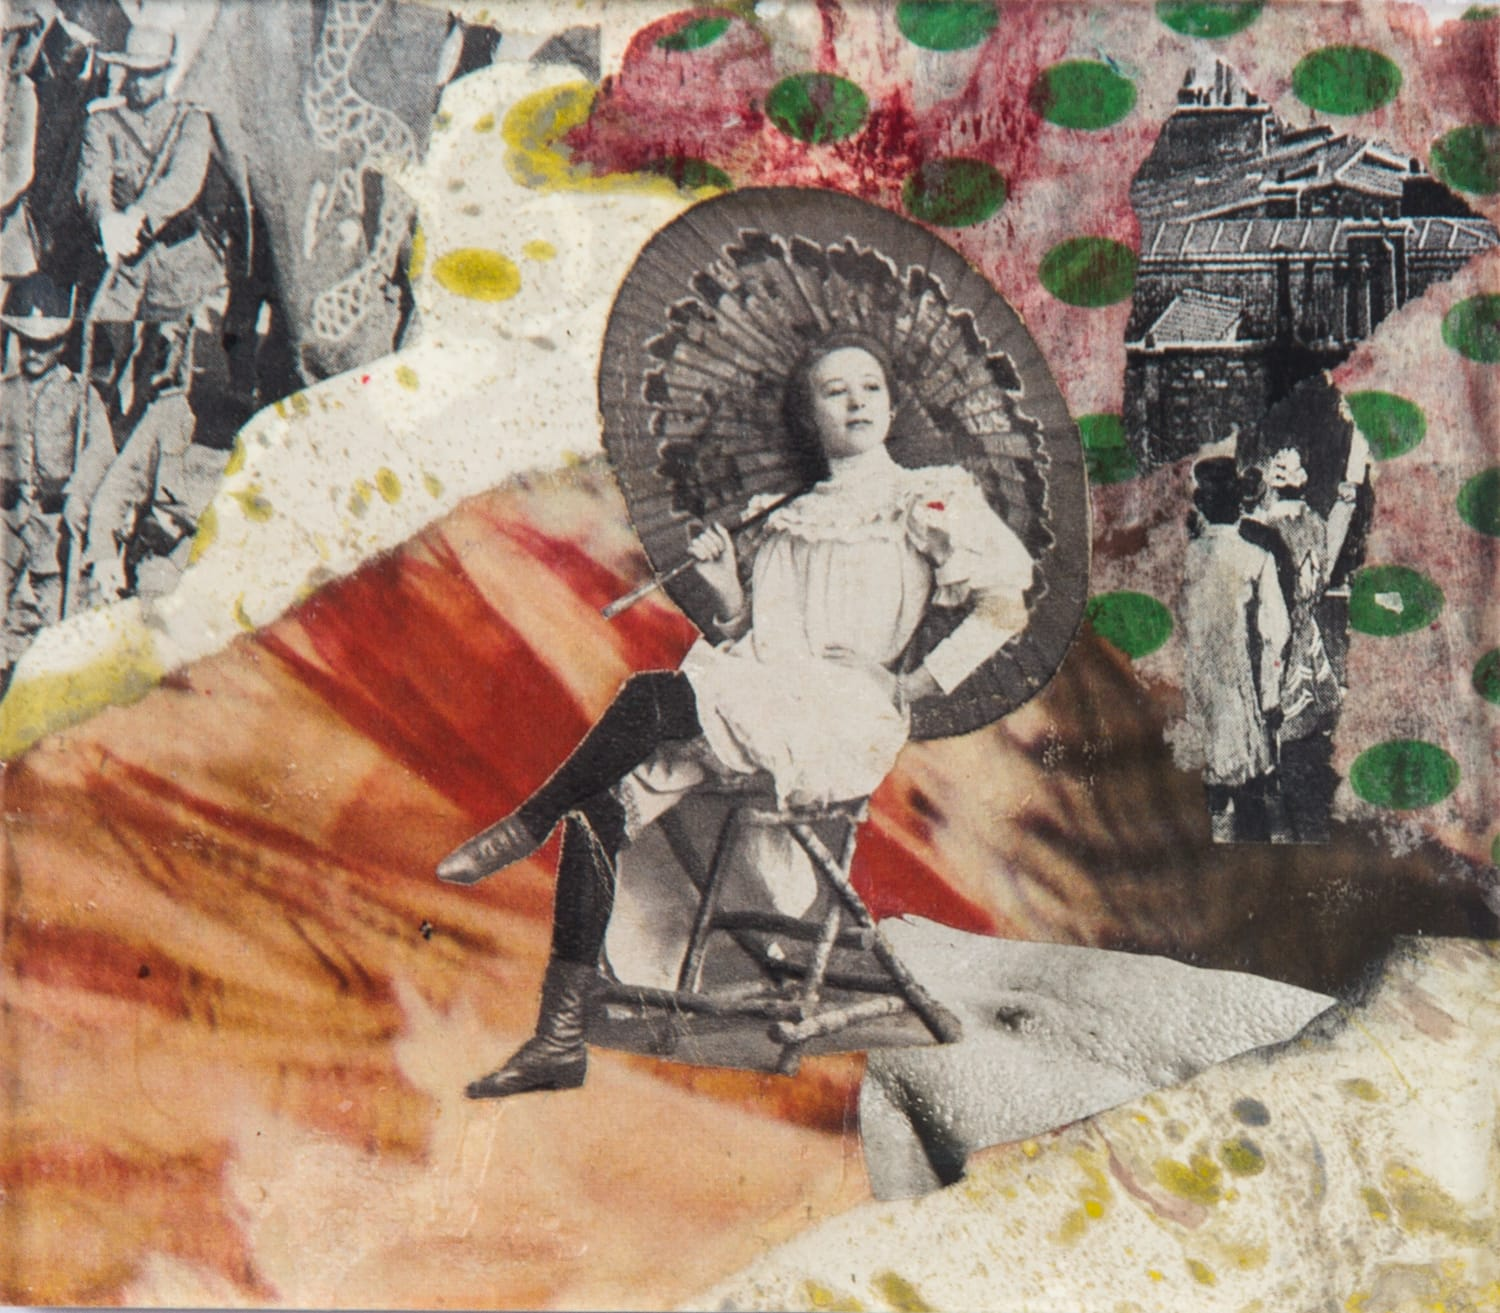 Miss Daisy. Collage on acrylic, magnet, 11 x 10 cm, 2018